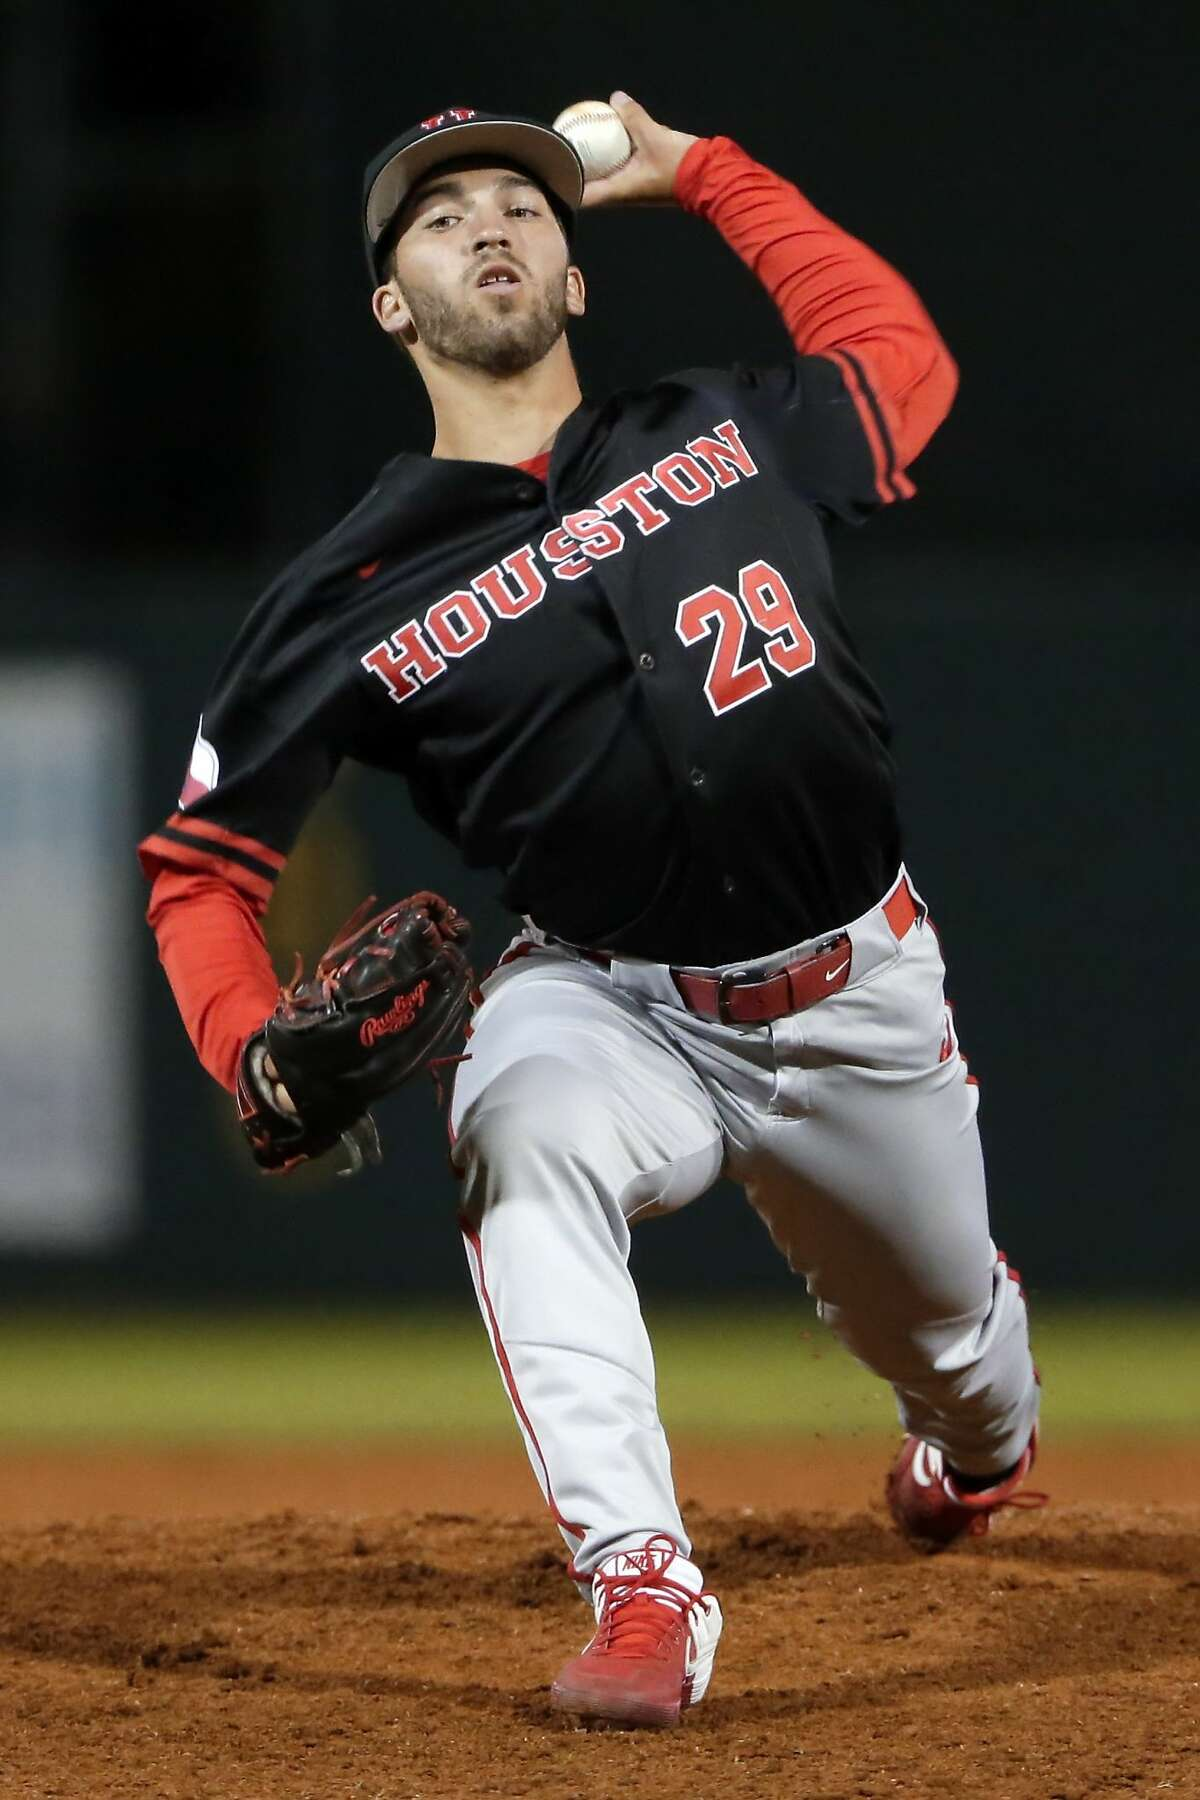 Houston starting pitcher Nick Rupp throws against Rice in the first inning during a baseball game at Rice Wednesday, Mar. 4, 2020 in Houston, TX.